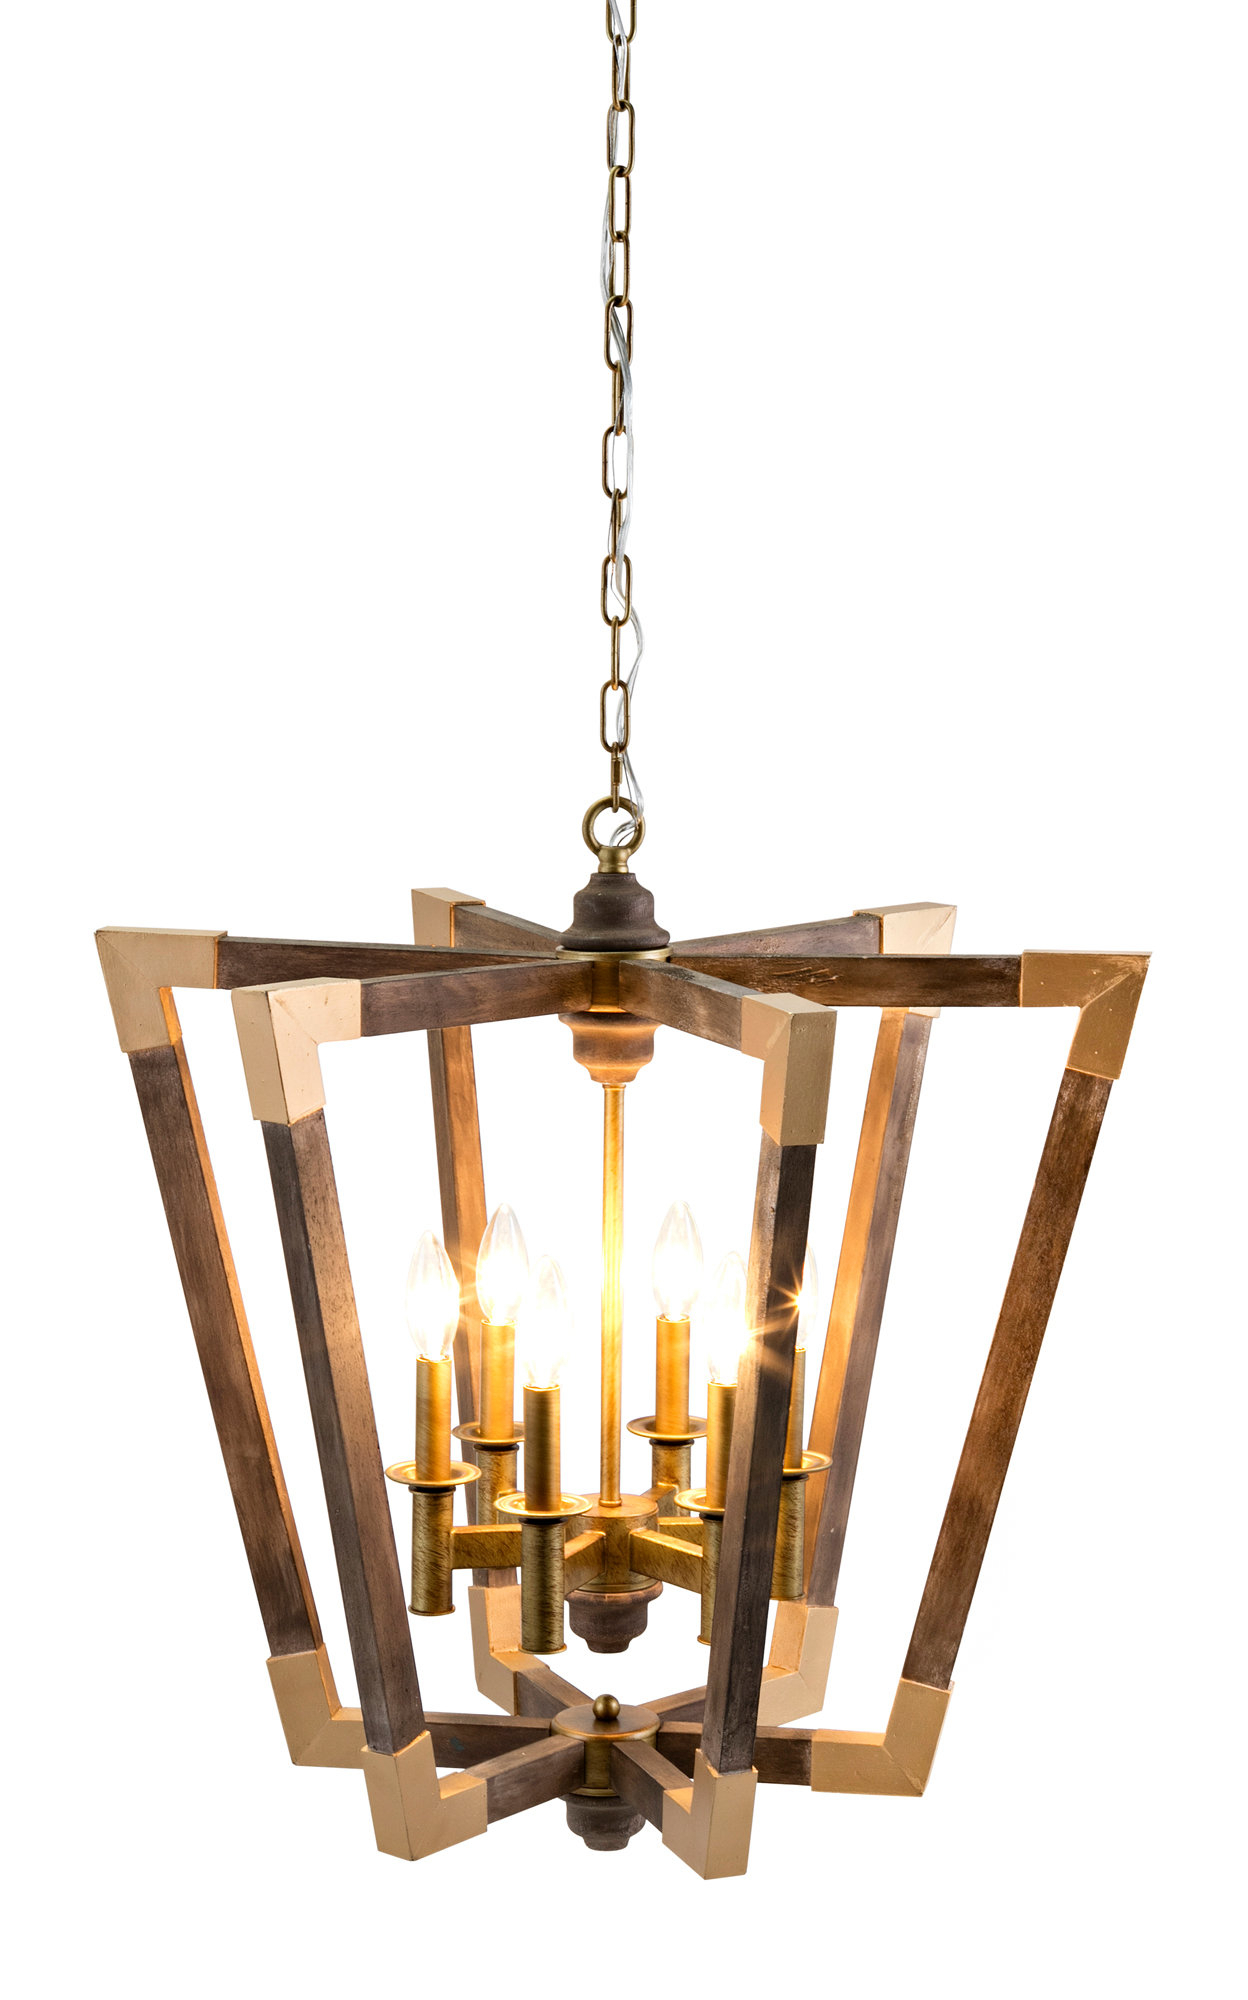 Widely Used Tiana 4 Light Geometric Chandeliers Throughout Westfall Wood 6 Light Geometric Chandelier (View 20 of 20)